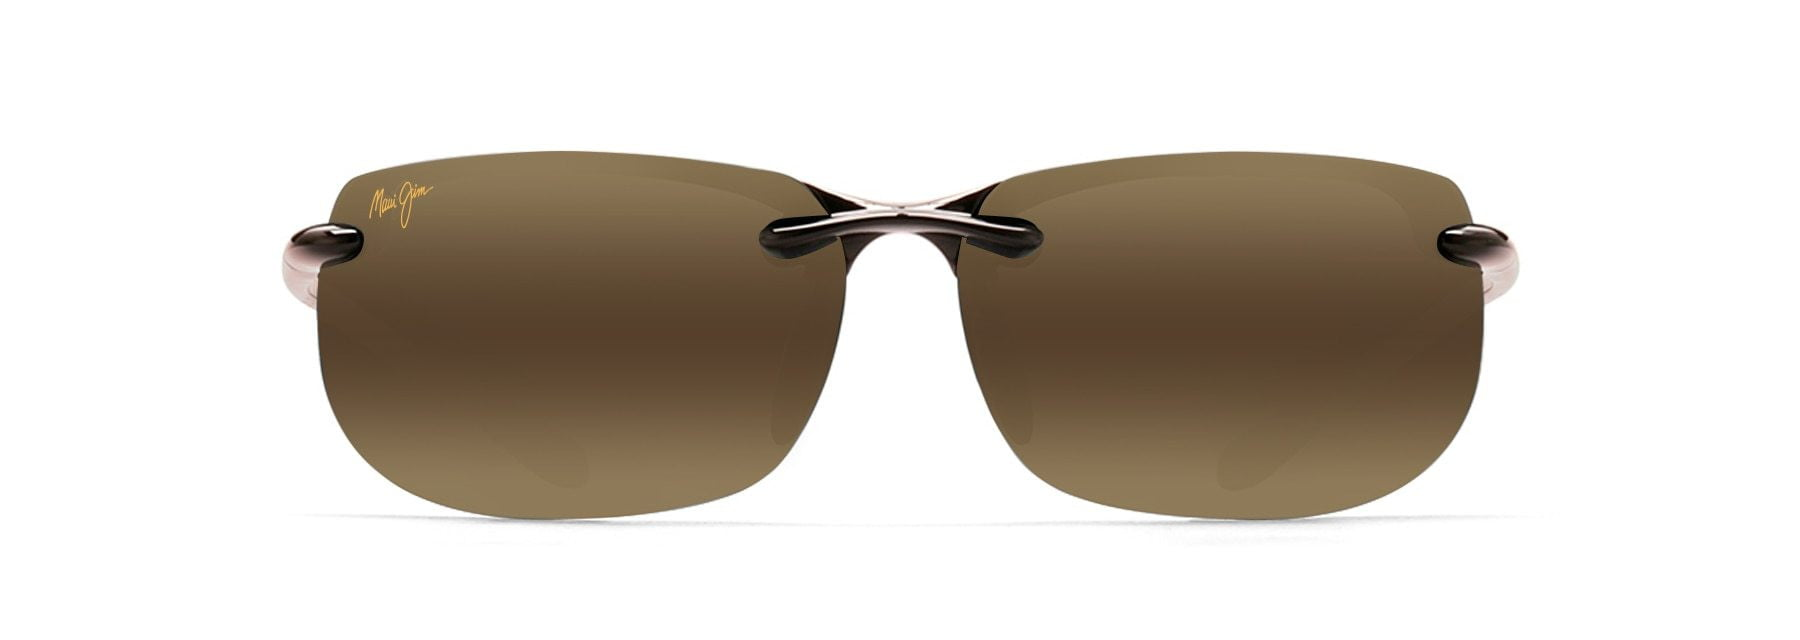 MyMaui Banyans MM412-001 Sunglasses